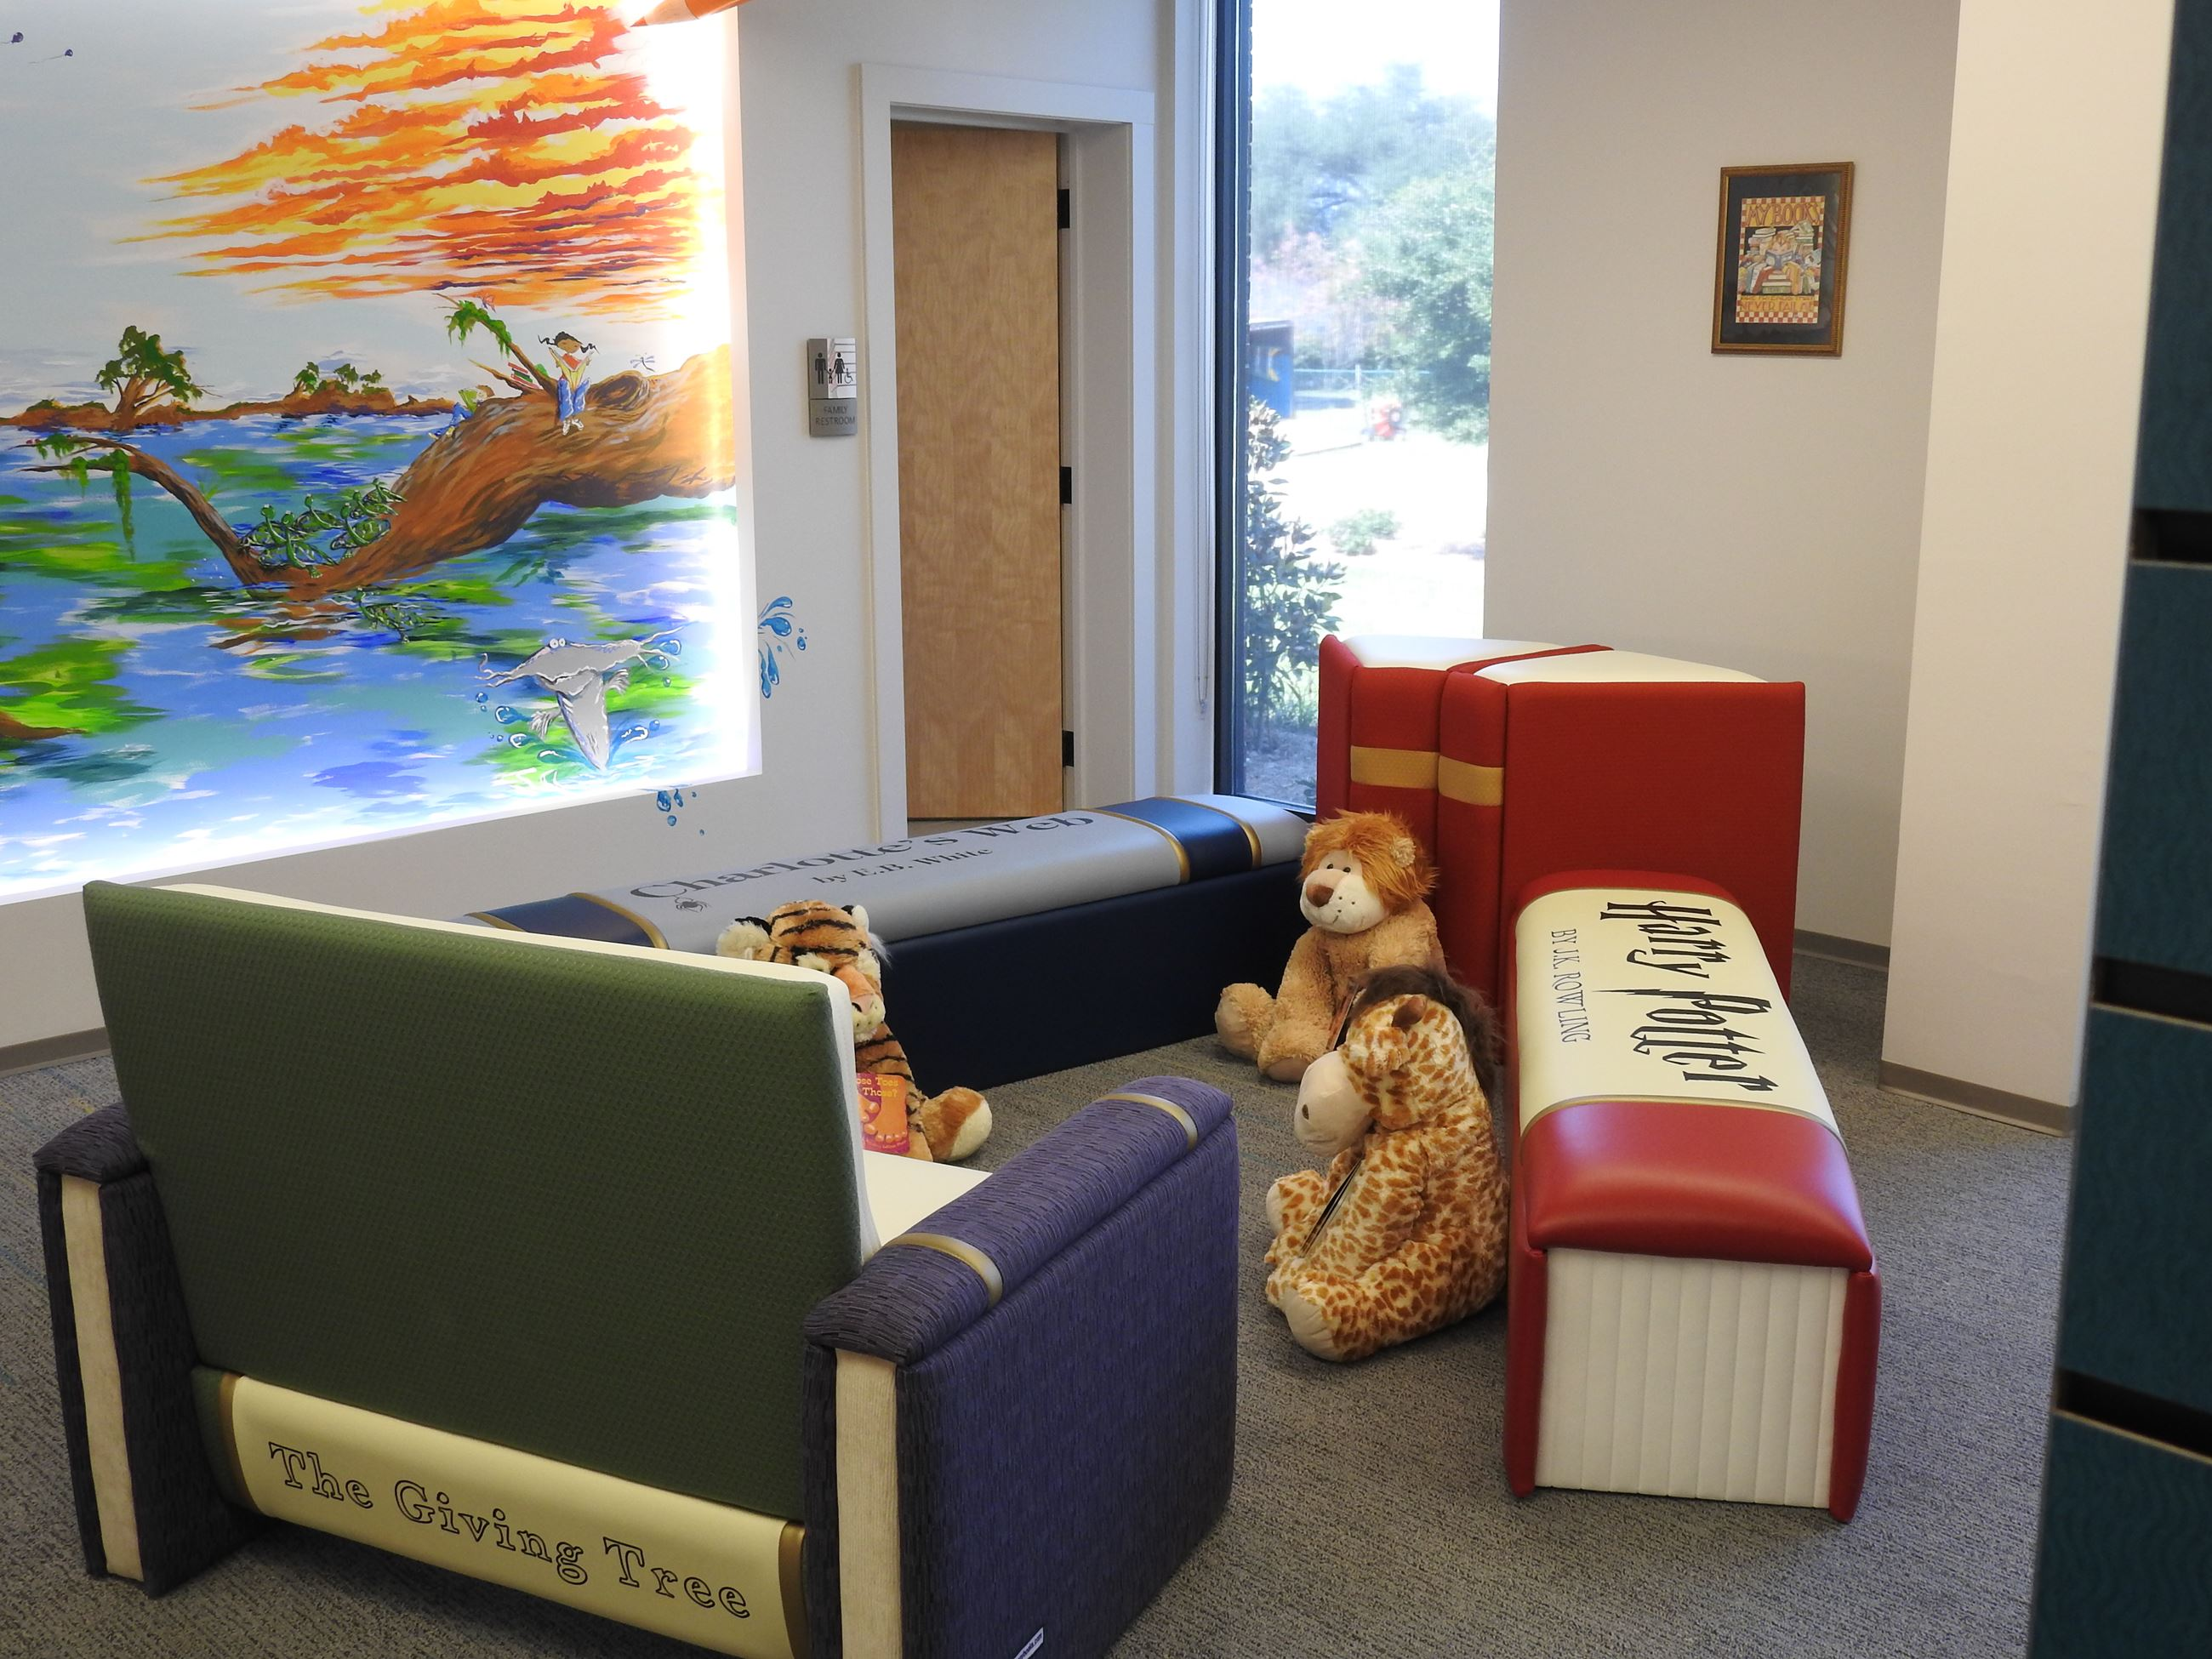 Furniture for the children's area